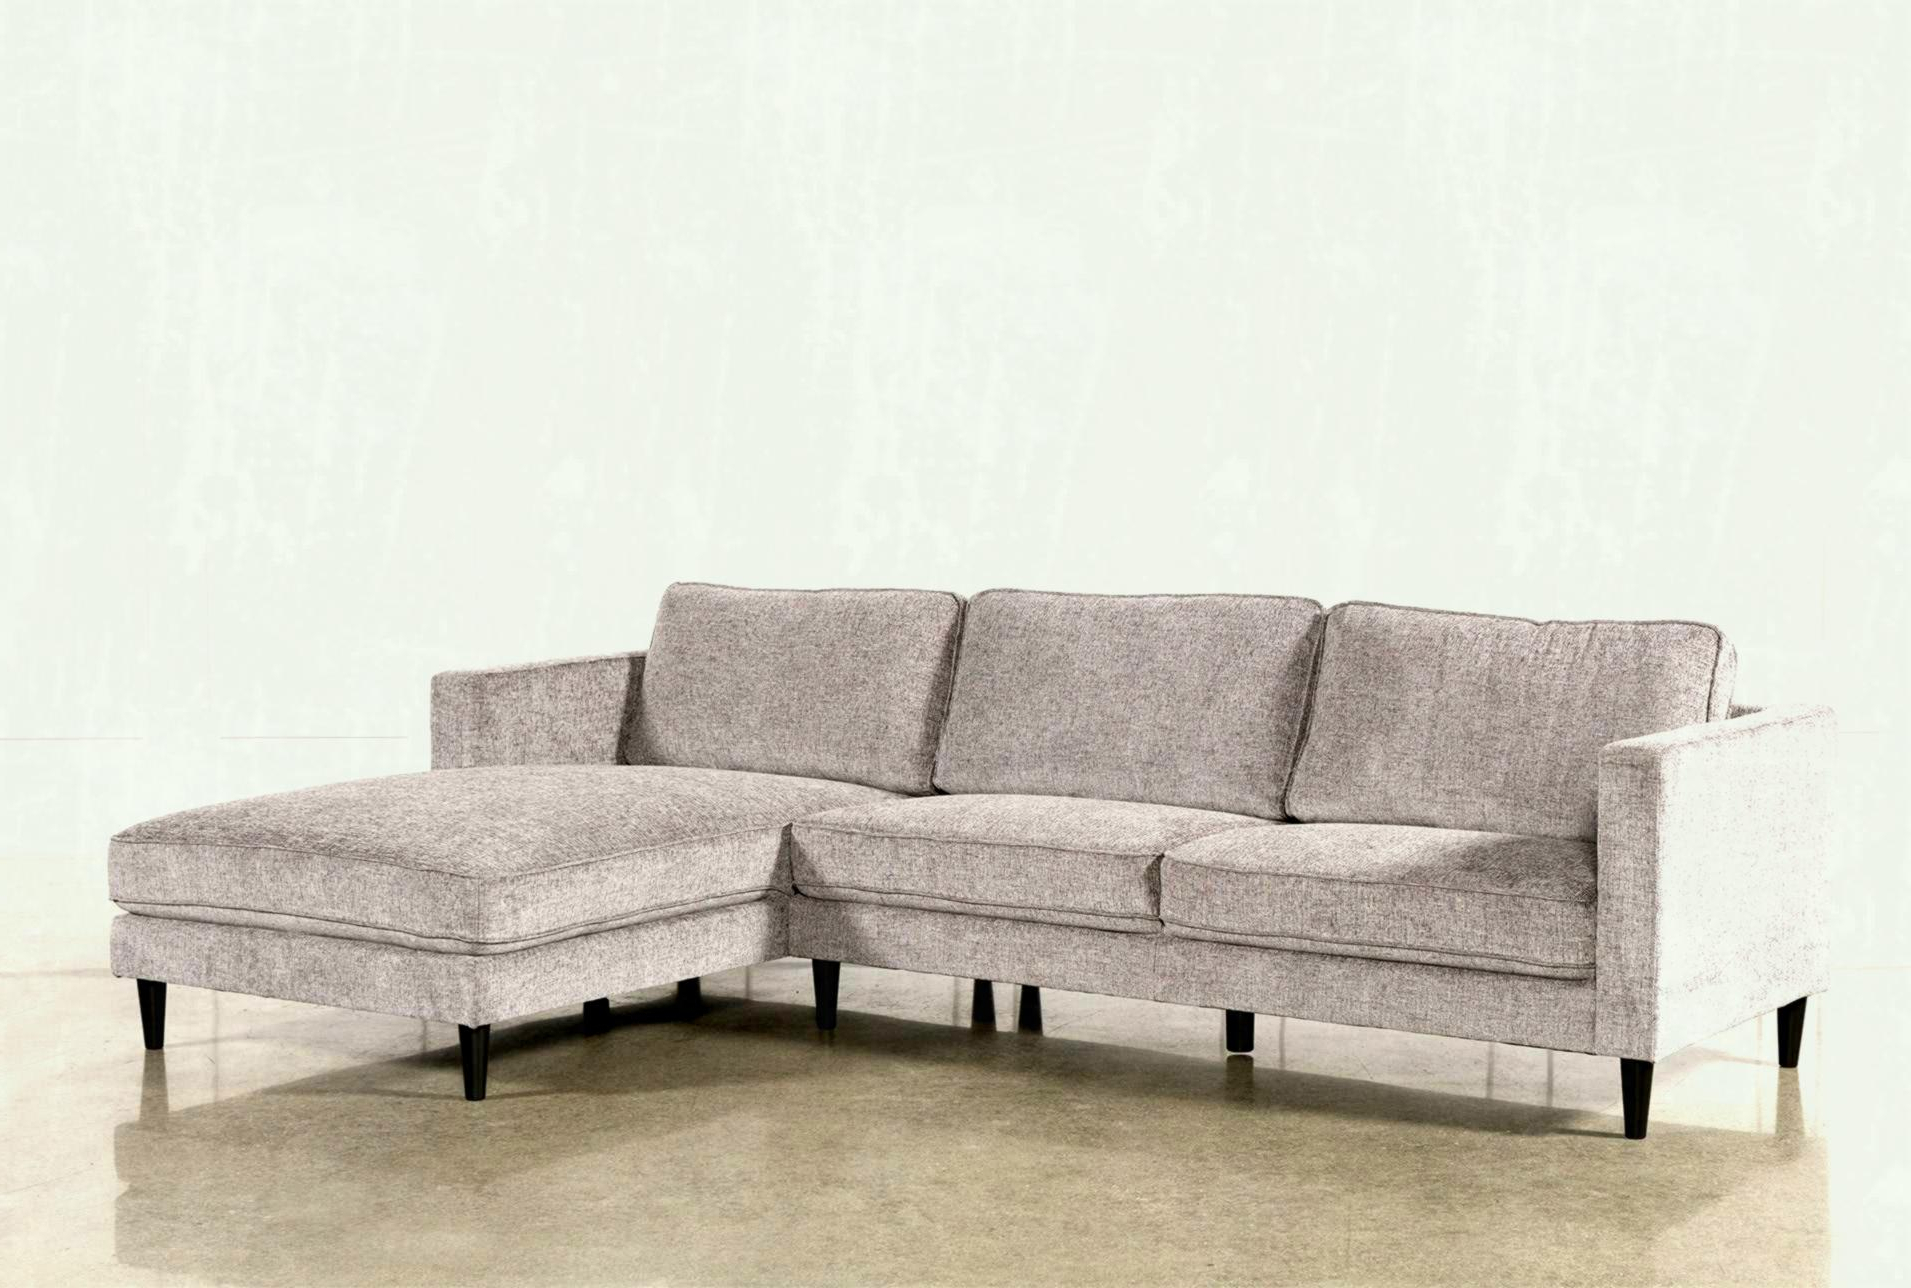 Cosmos Grey 2 Piece Sectionals With Laf Chaise Within Widely Used Mix And Match Seats Living Spaces – Garage Plans With Living Space (View 11 of 20)